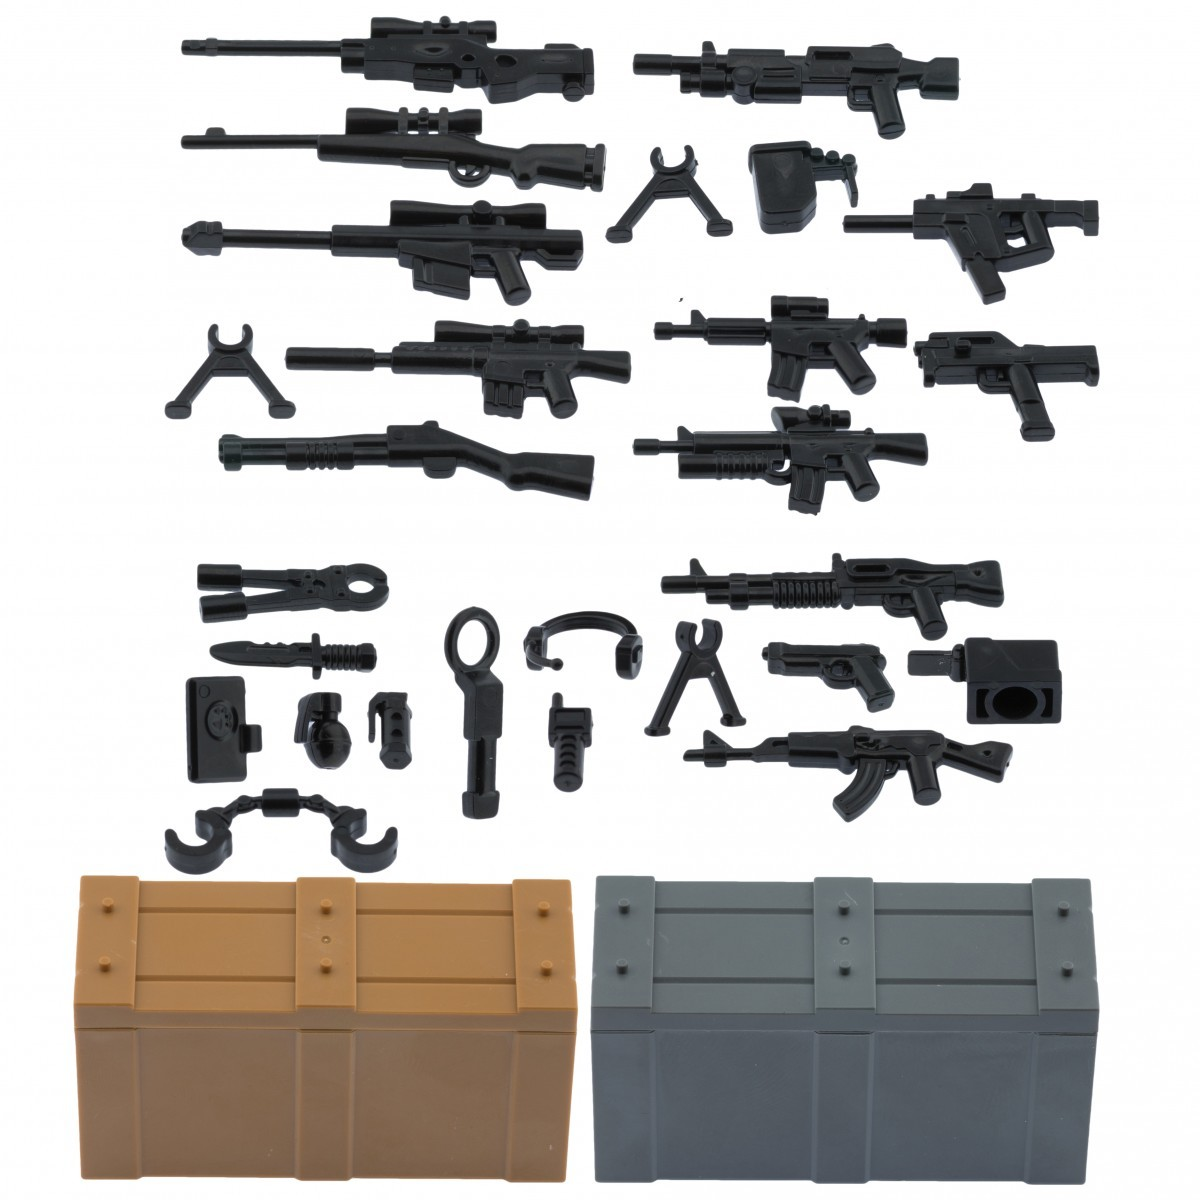 My military guns weapons pack for lego minifigures minifig accessories b weapons pack and crates